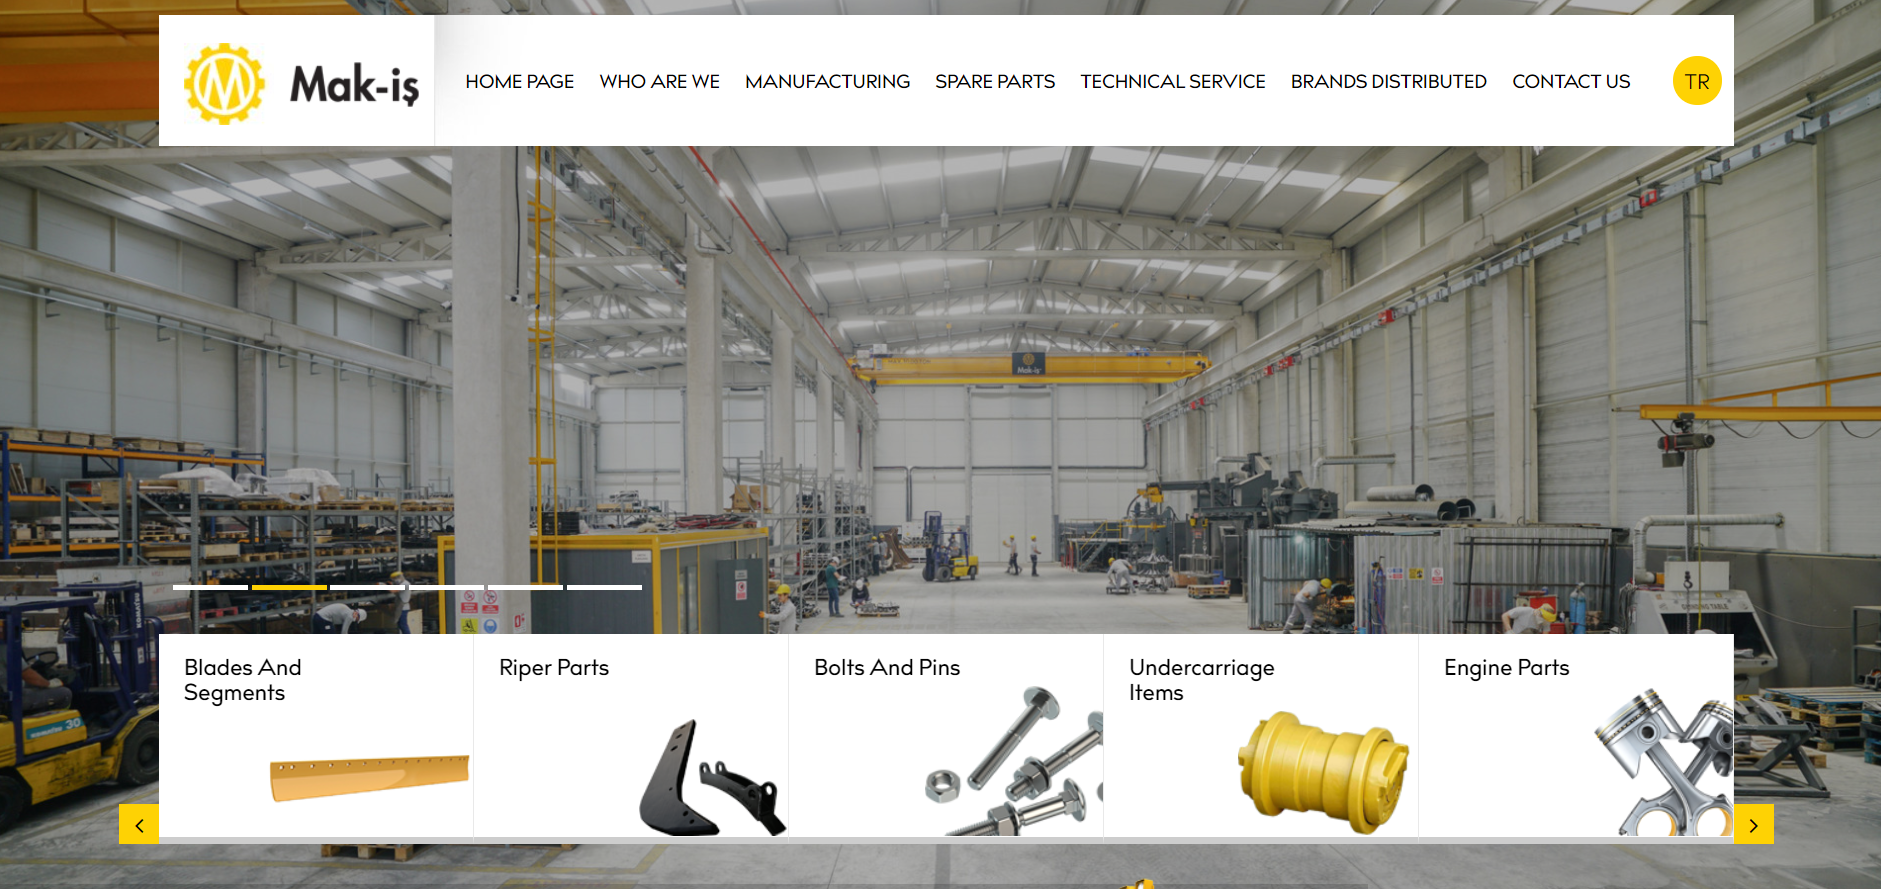 WE HAD UPDATED OUR WEBSITE...